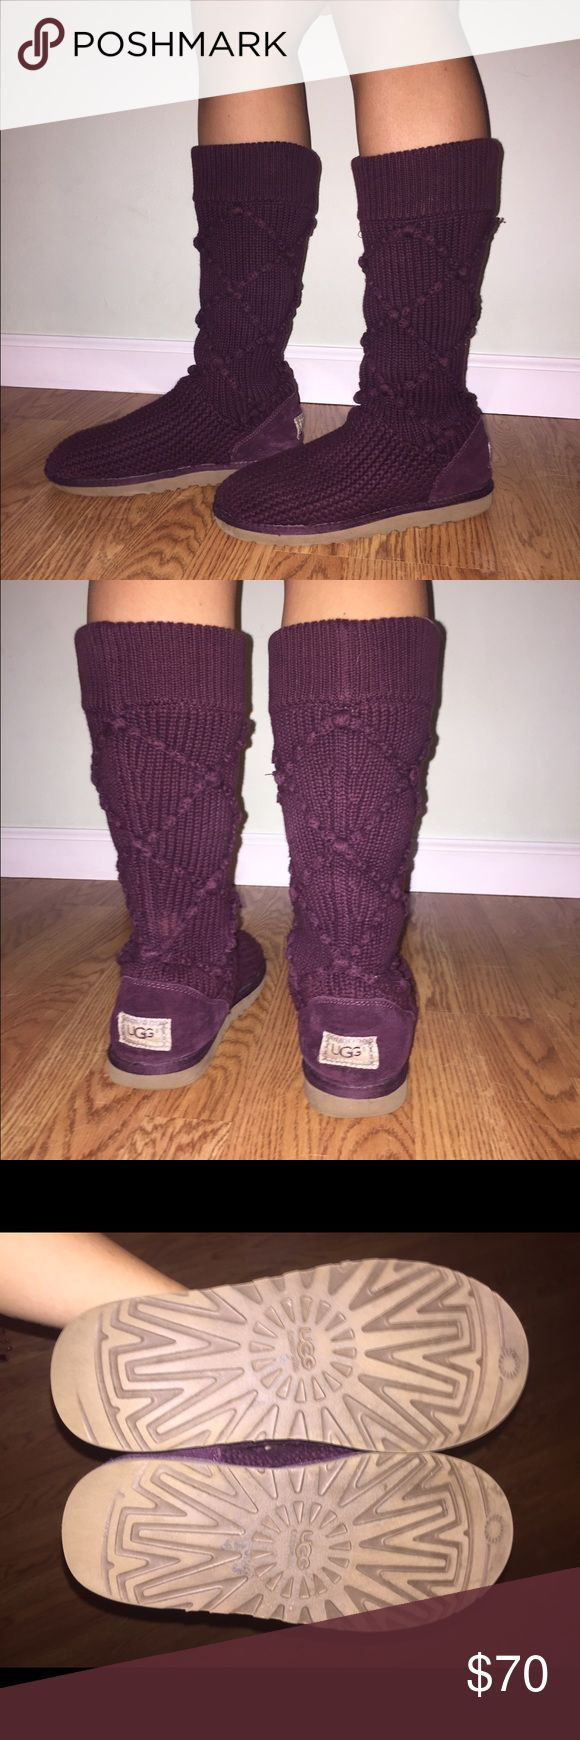 Argyle Knit Purple Uggs Size 8 - gently worn purple uggs UGG Shoes Winter & Rain Boots